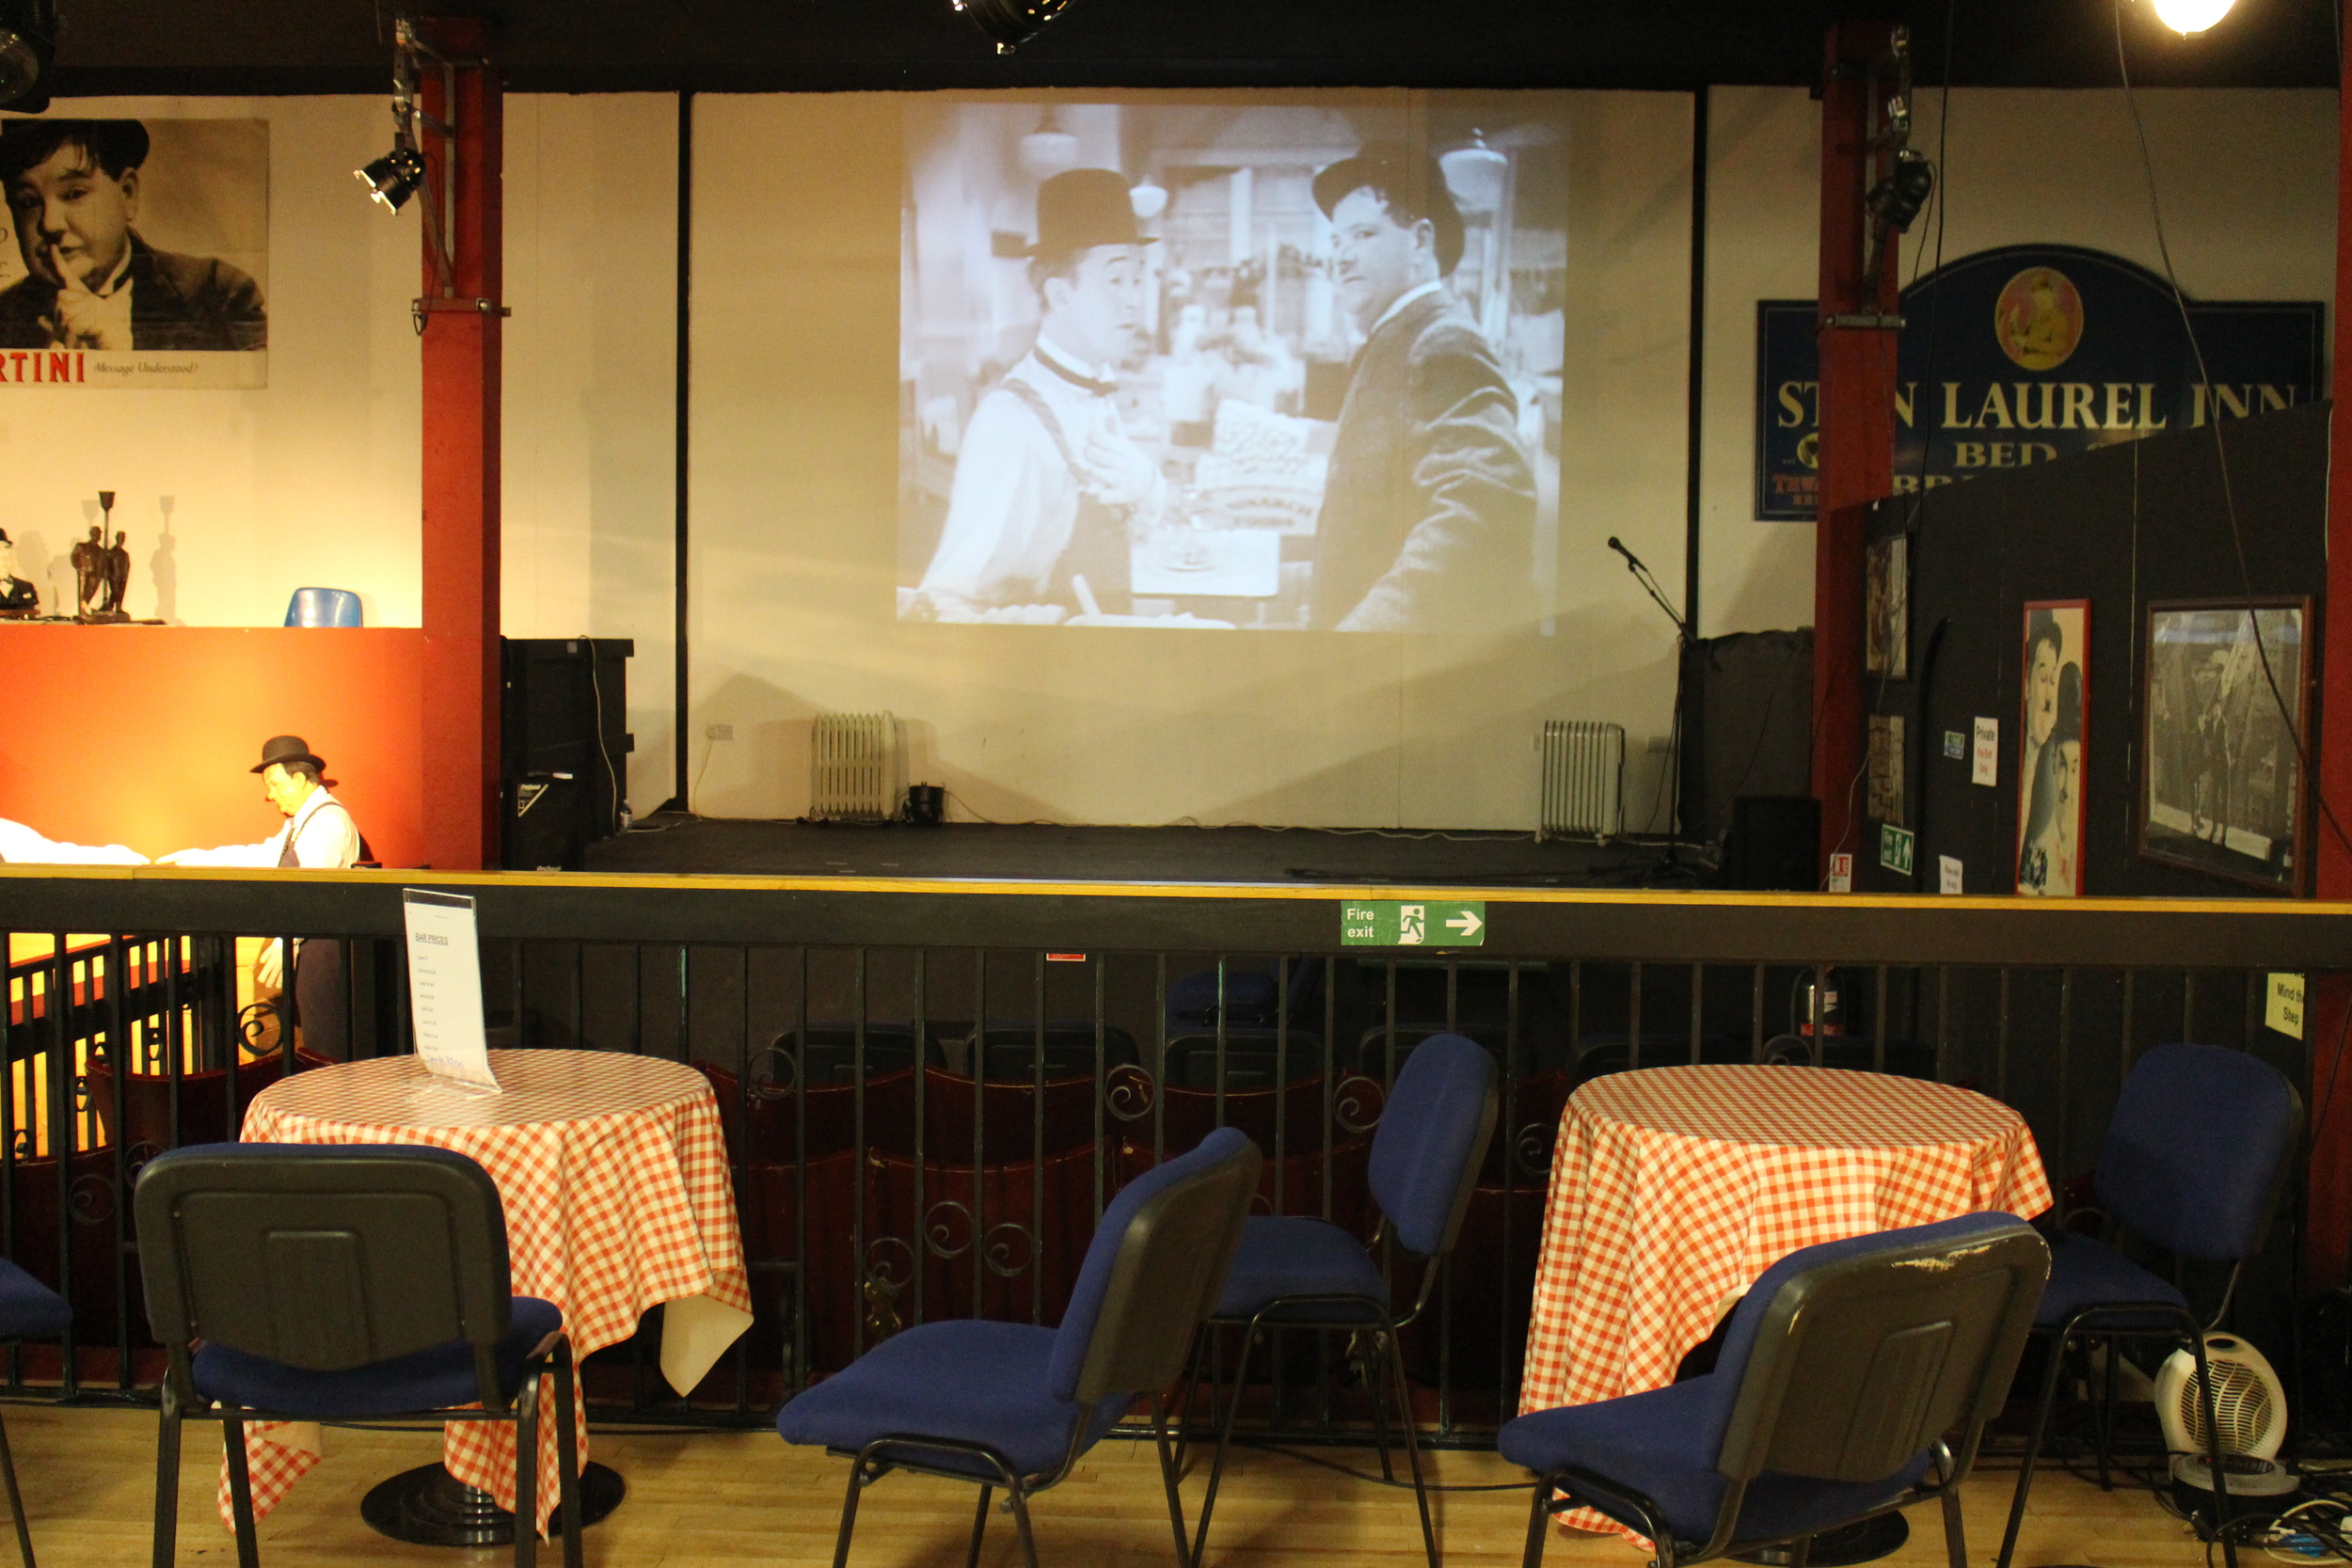 The Laurel and Hardy museum, housed in an old cinema, features a projector playing their films